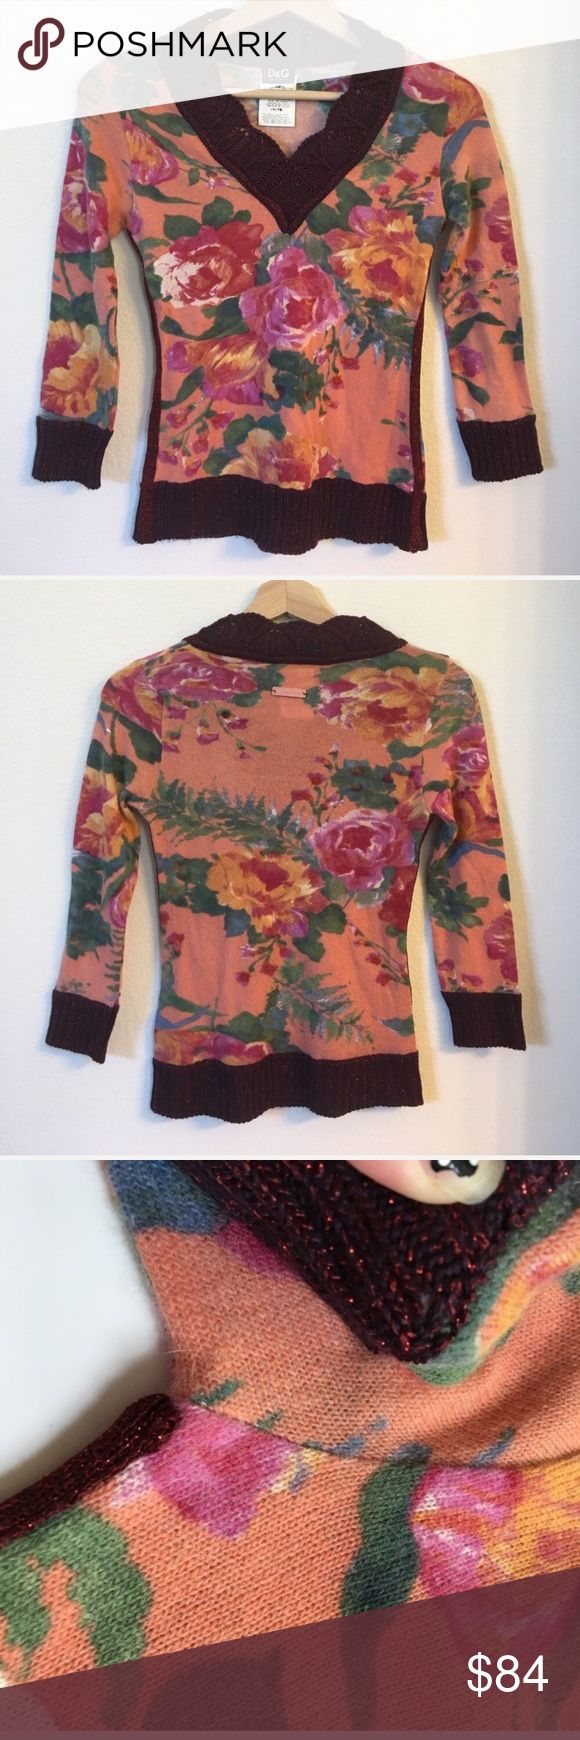 """{ Dolce & Gabbana } sweater shirt D & G sweater shirt 34% nylon 34% angora 21% wool 7% acetate 4% other. 7/8 sleeves, v neck, knit trims, back has leather logo tag sewn on I had to fix by restitching on since one side was loose. Previously worn and has normal wear to it and a few spots that the knit is a little """"pulled"""" looks almost like a hole (see picture example please). Measures approx laying flat pit to pit 15""""mid shoulder down 21"""". Has light stretch only. Hologram pictured. Size is…"""